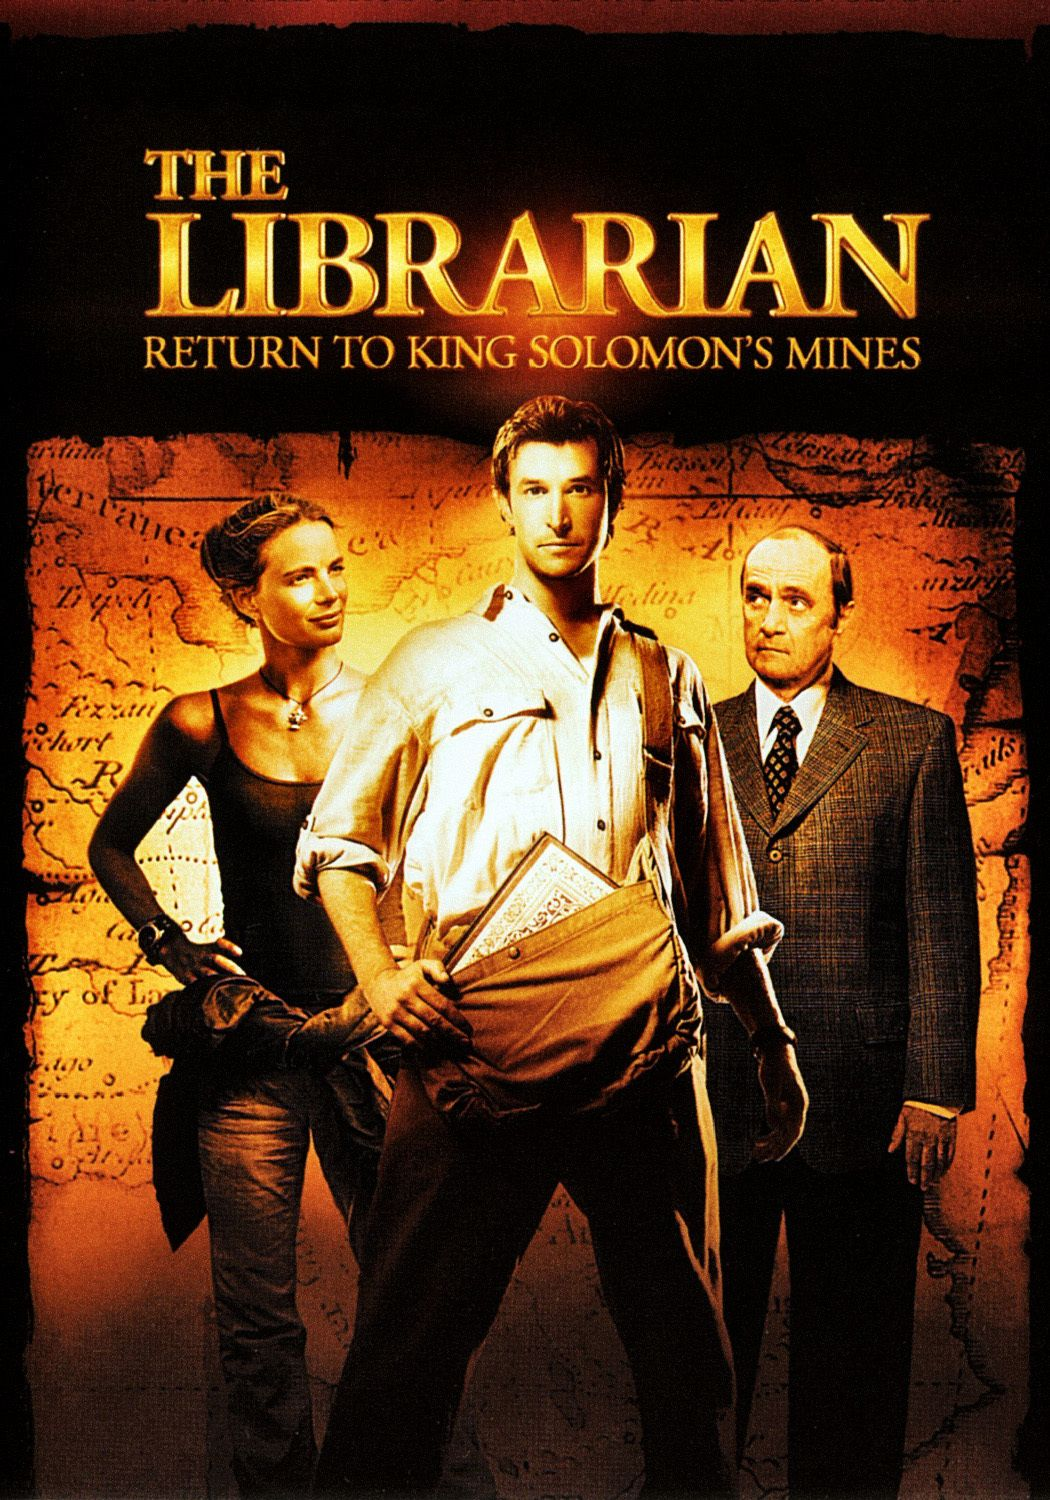 The Librarian Film Series Cast